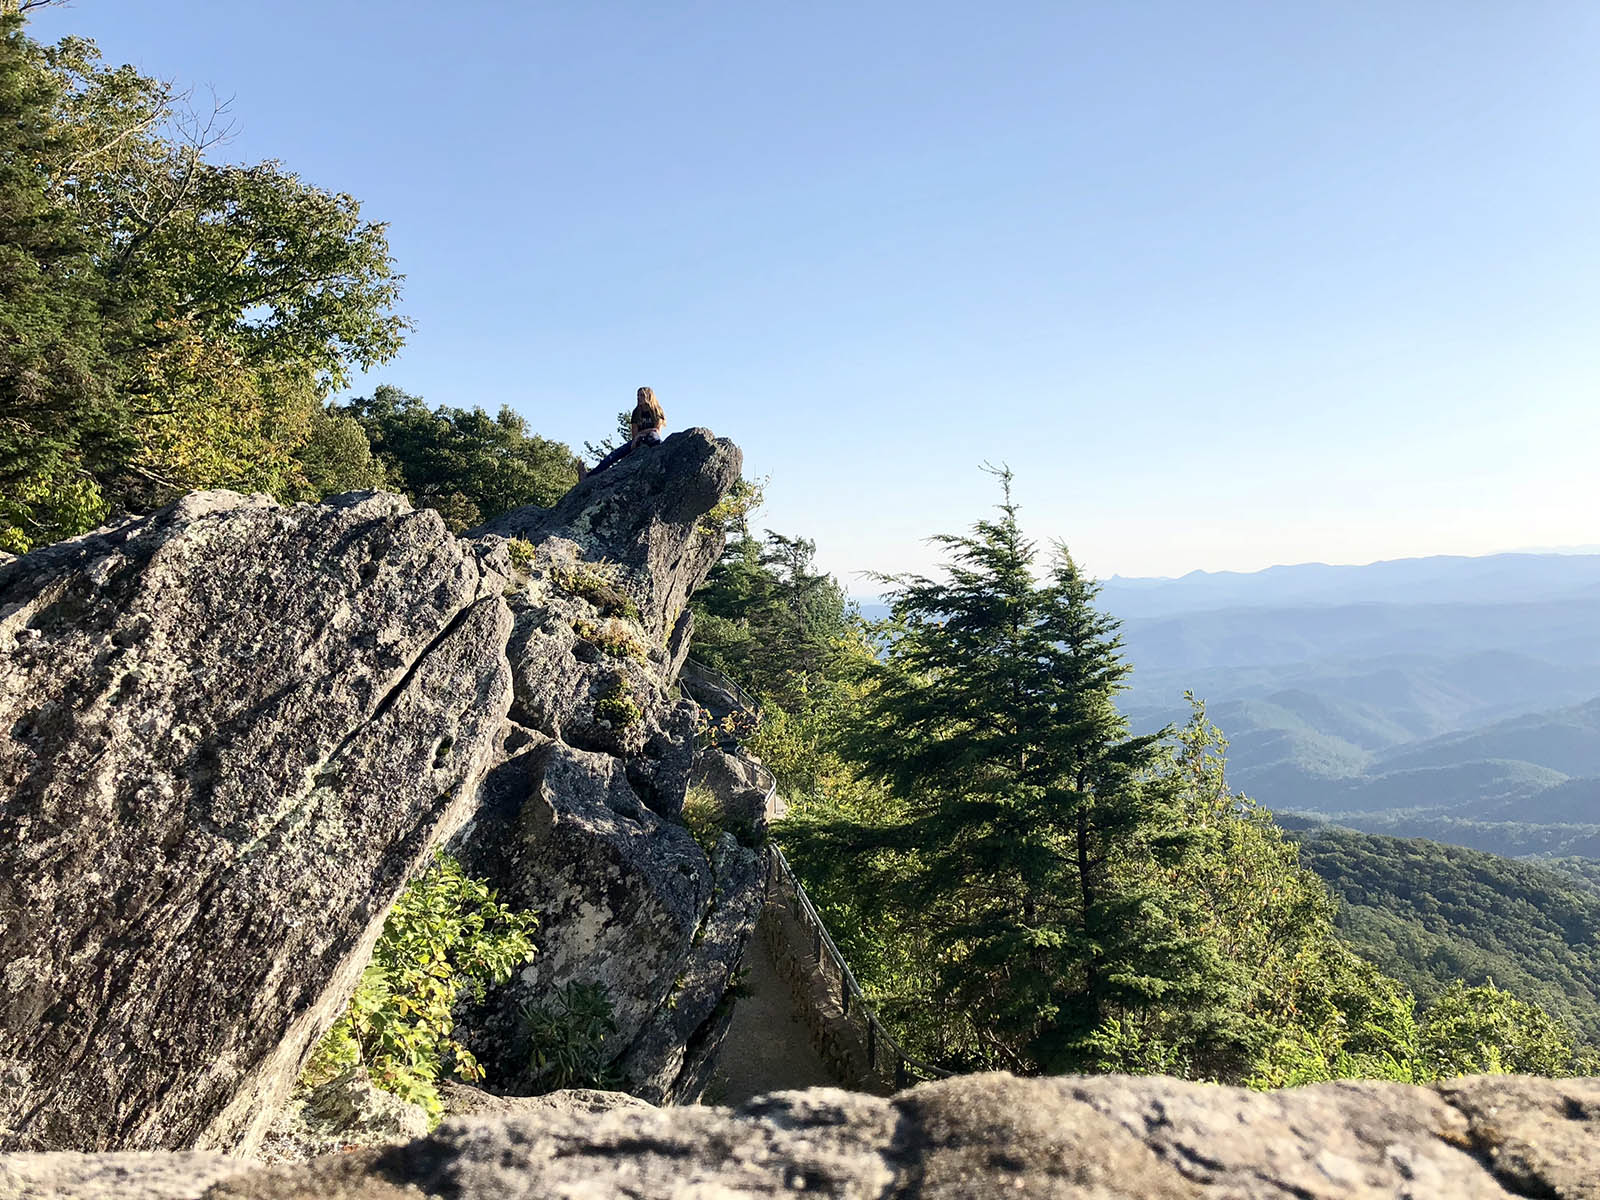 The Blowing Rock things to do